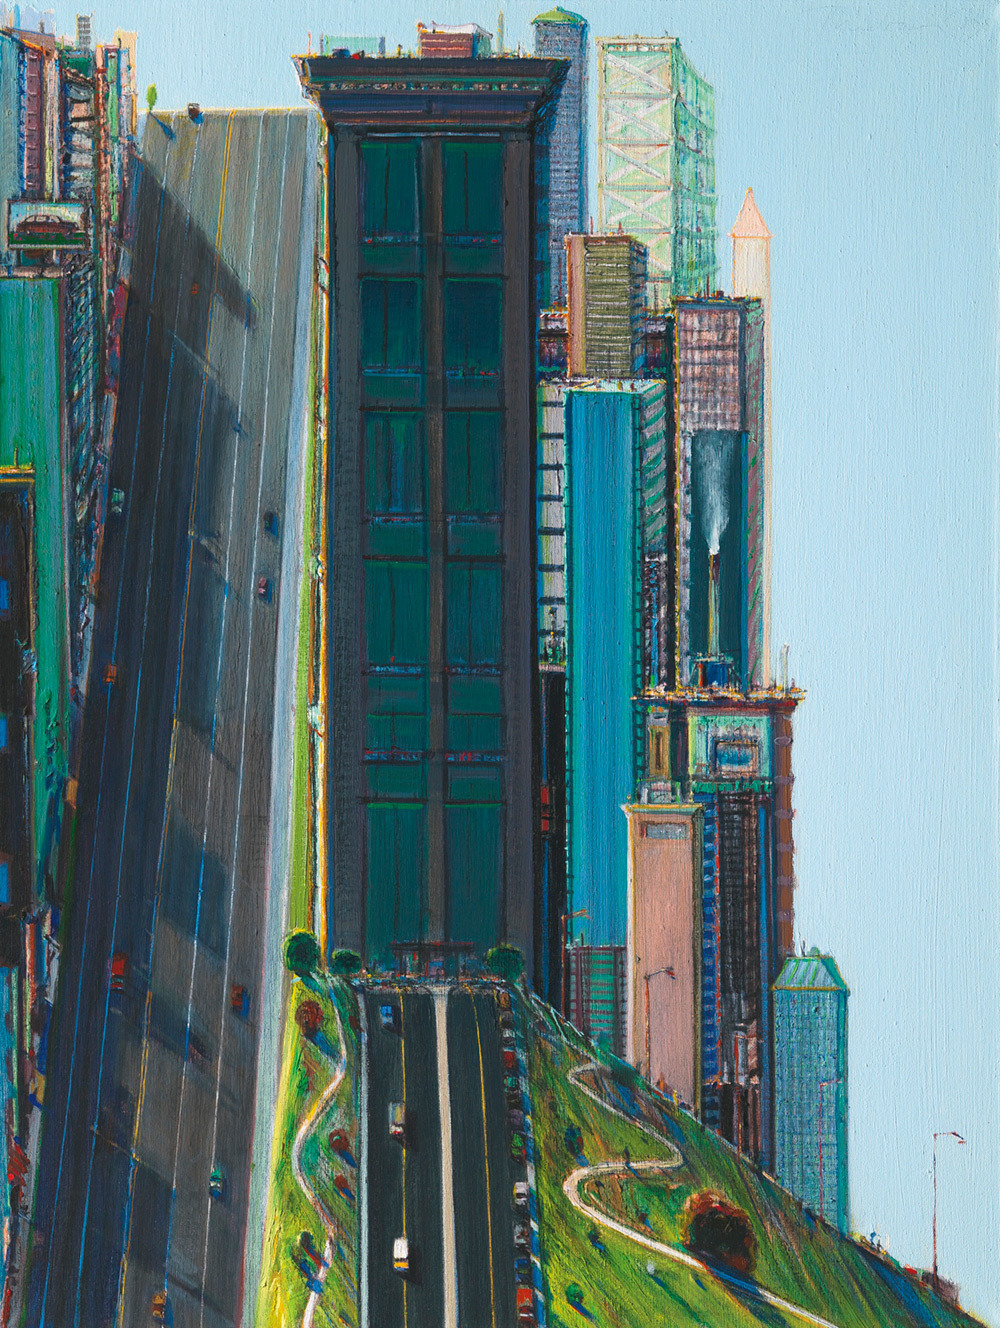 Wayne Thiebaud,  Hill Street (Day City)  1981.